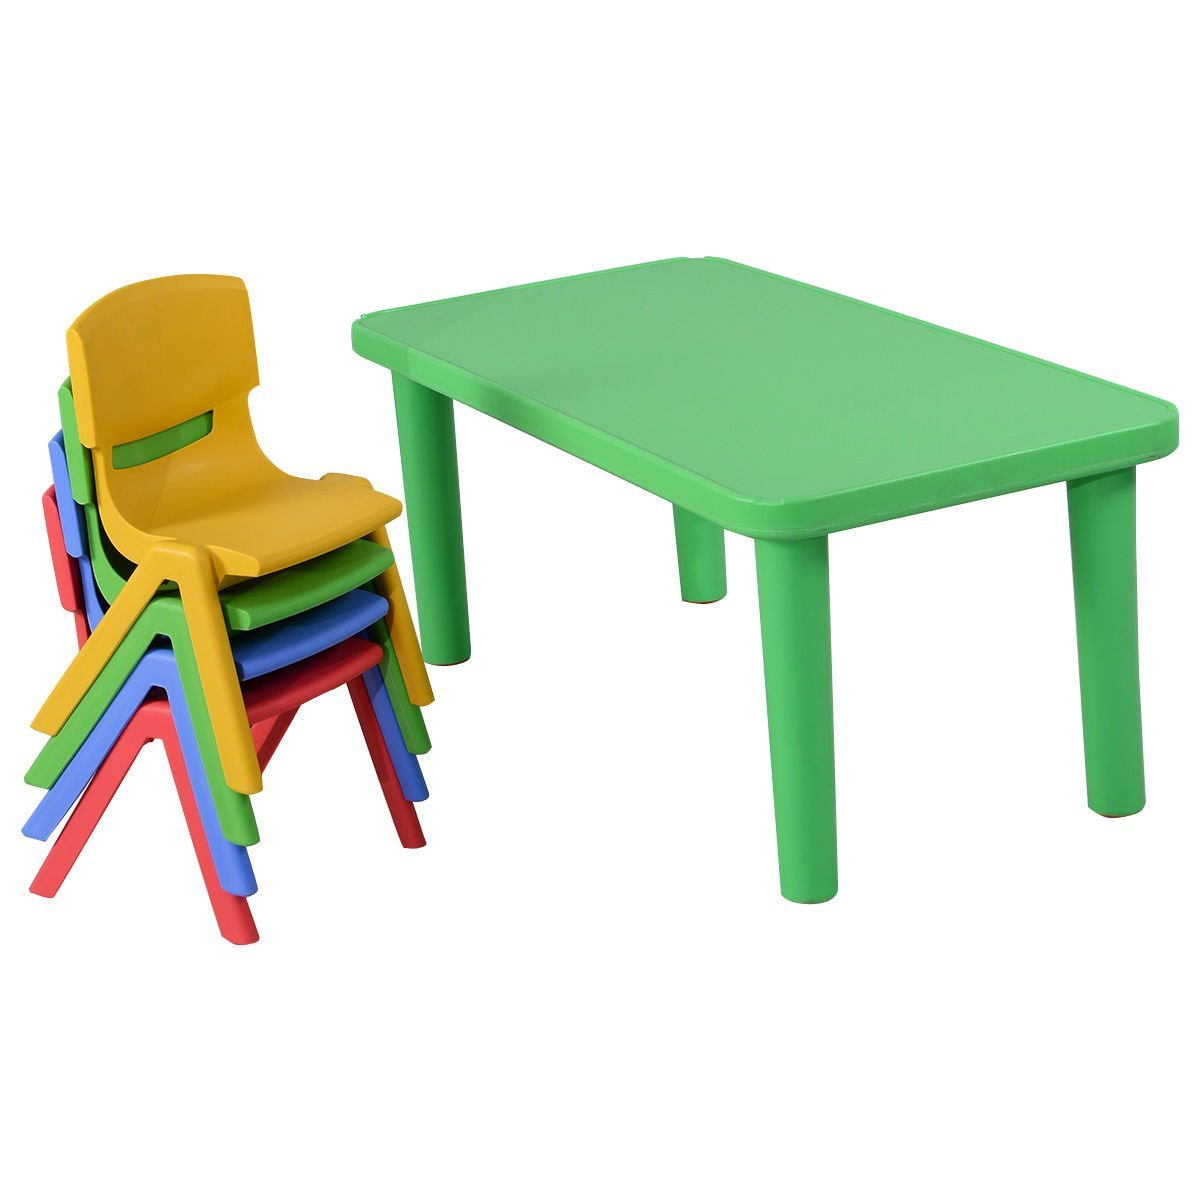 Giantex Kids Plastic Table and 4 Chairs Set Colorful Play School ...